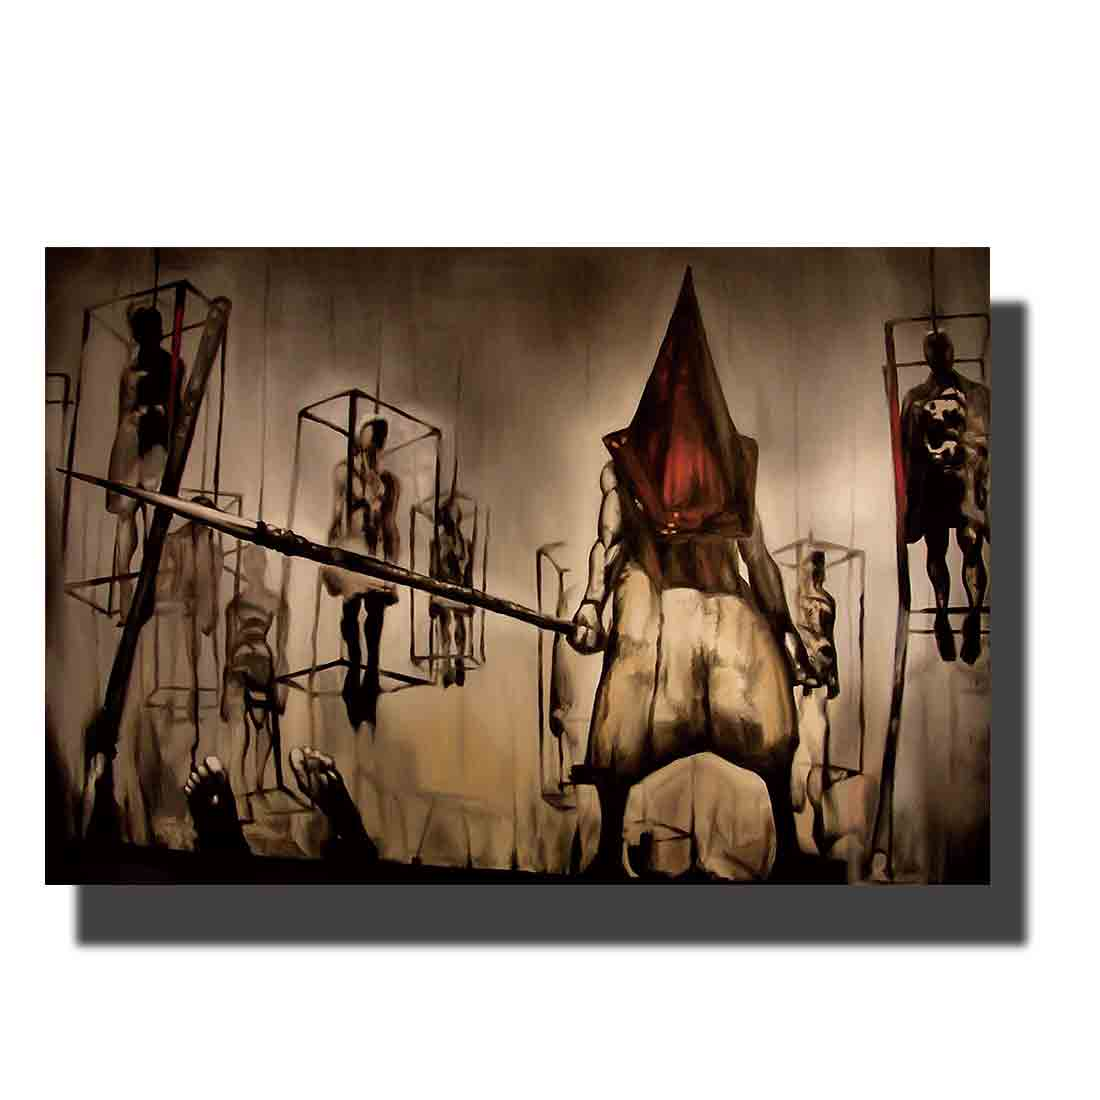 L611 Art Silent Hill - dark evil head homecoming TV Game Poster fabric painting14x21 24x36 print Decoration Room wall Picture image